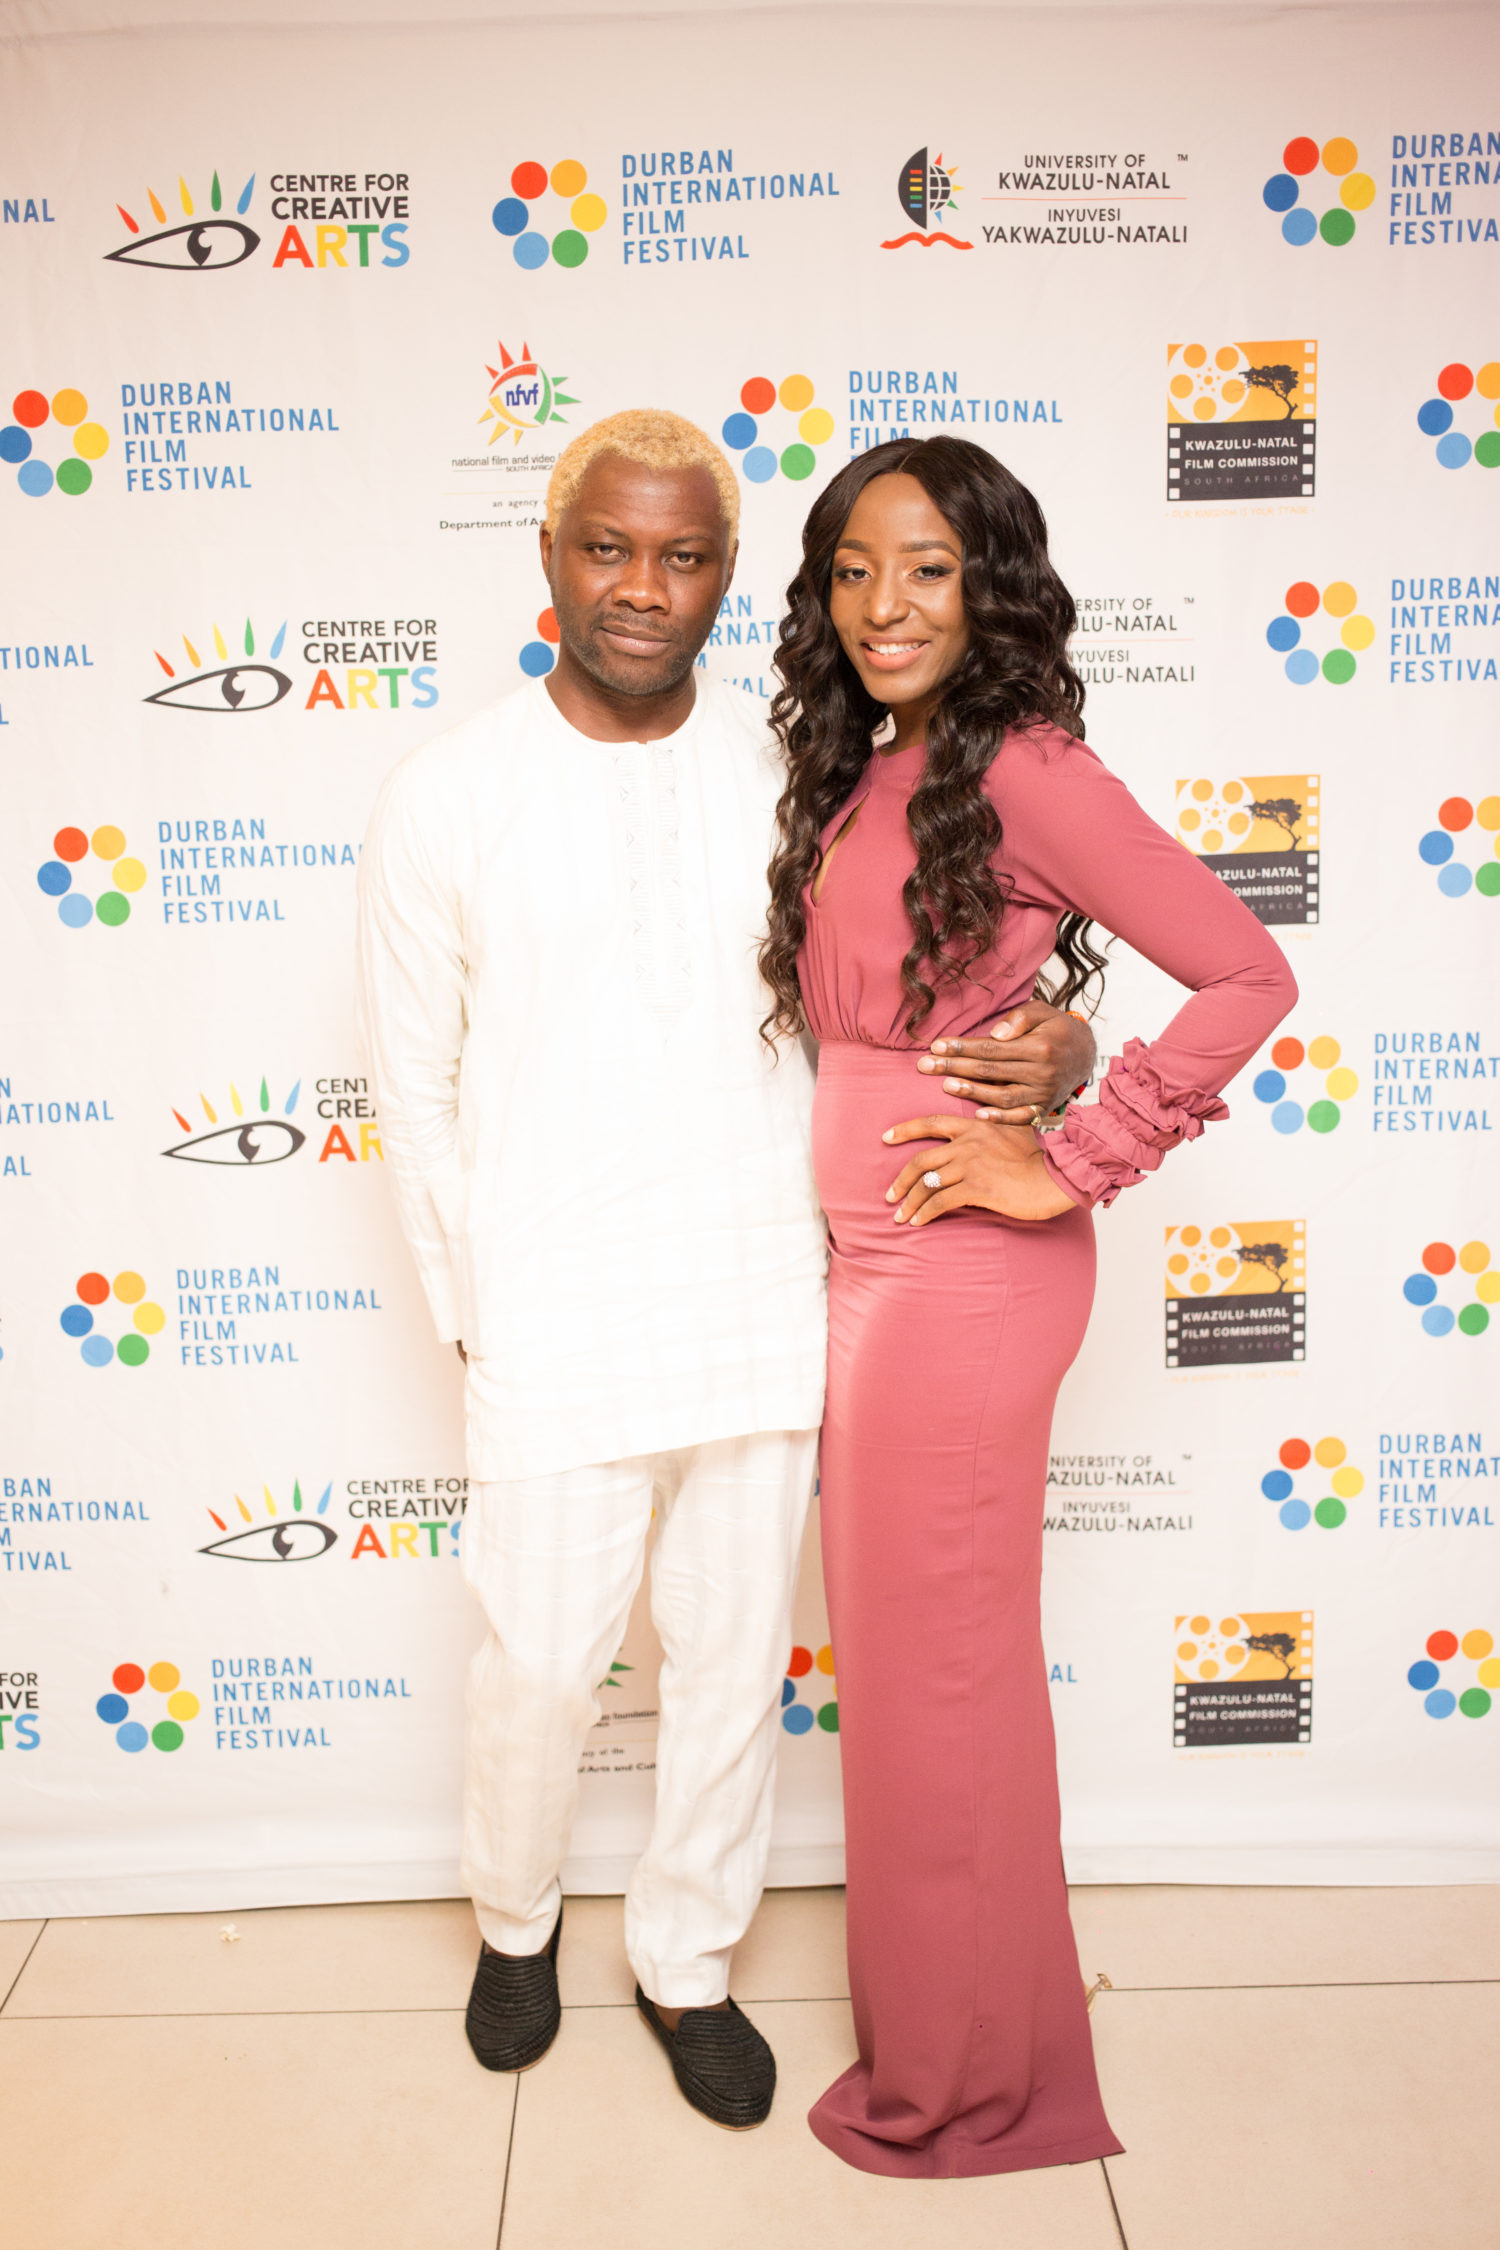 Oreka Godis' Style Killed It at Durban International Film Festival